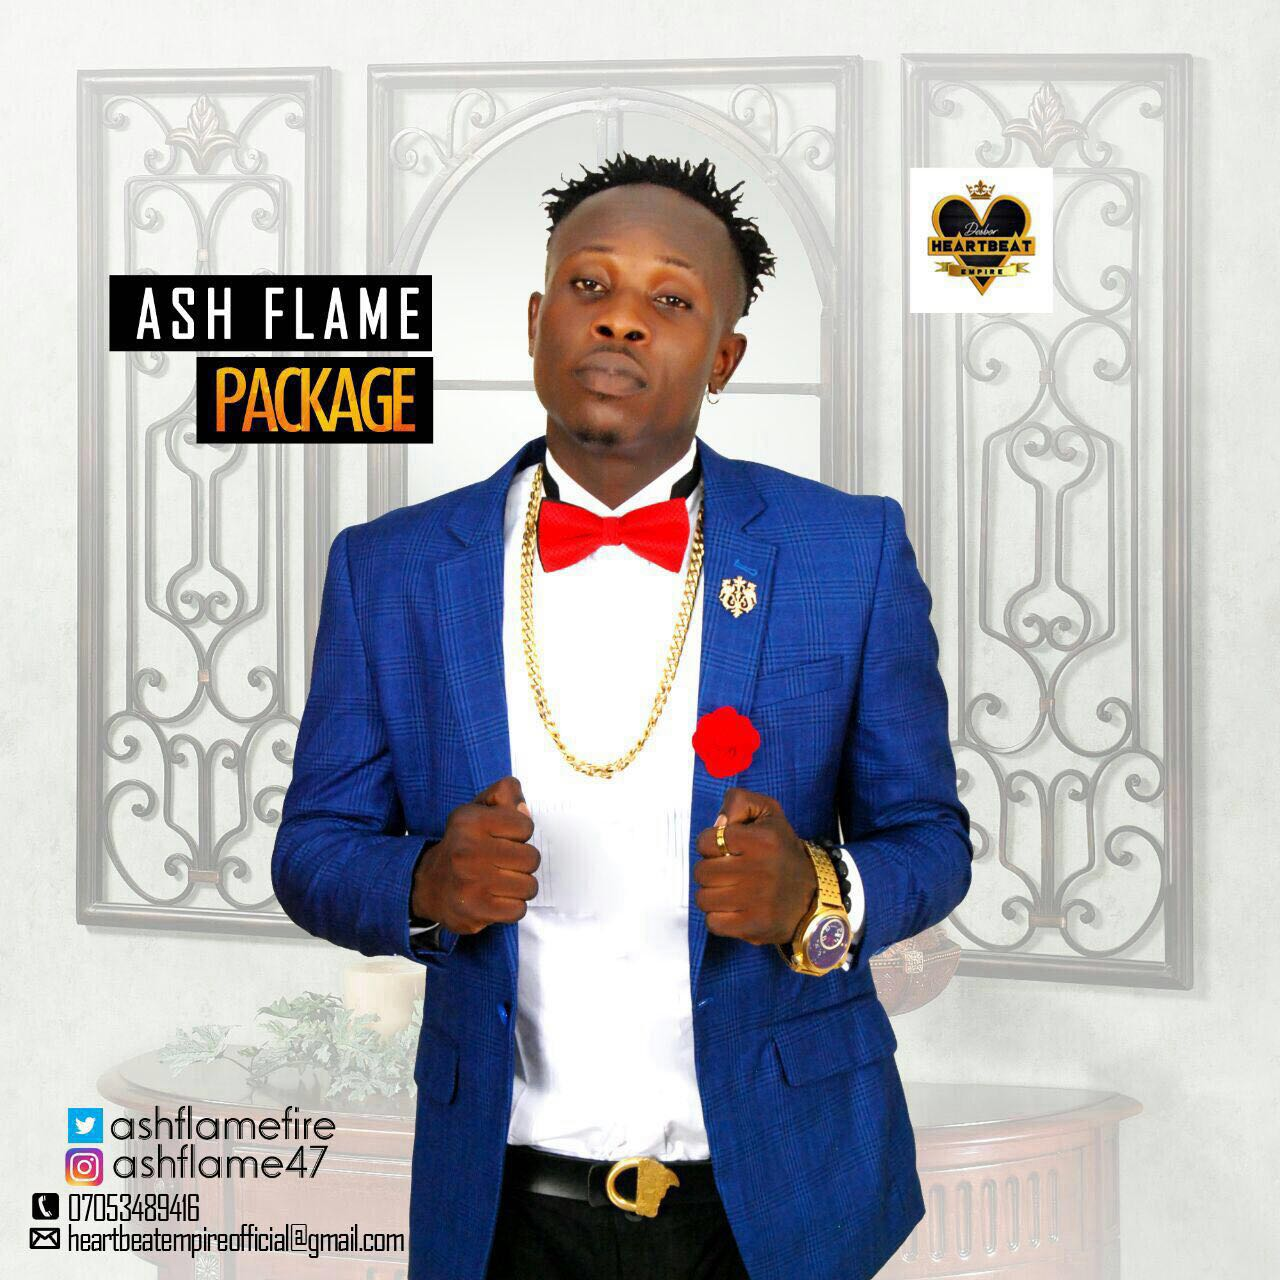 Ash Flame – Package